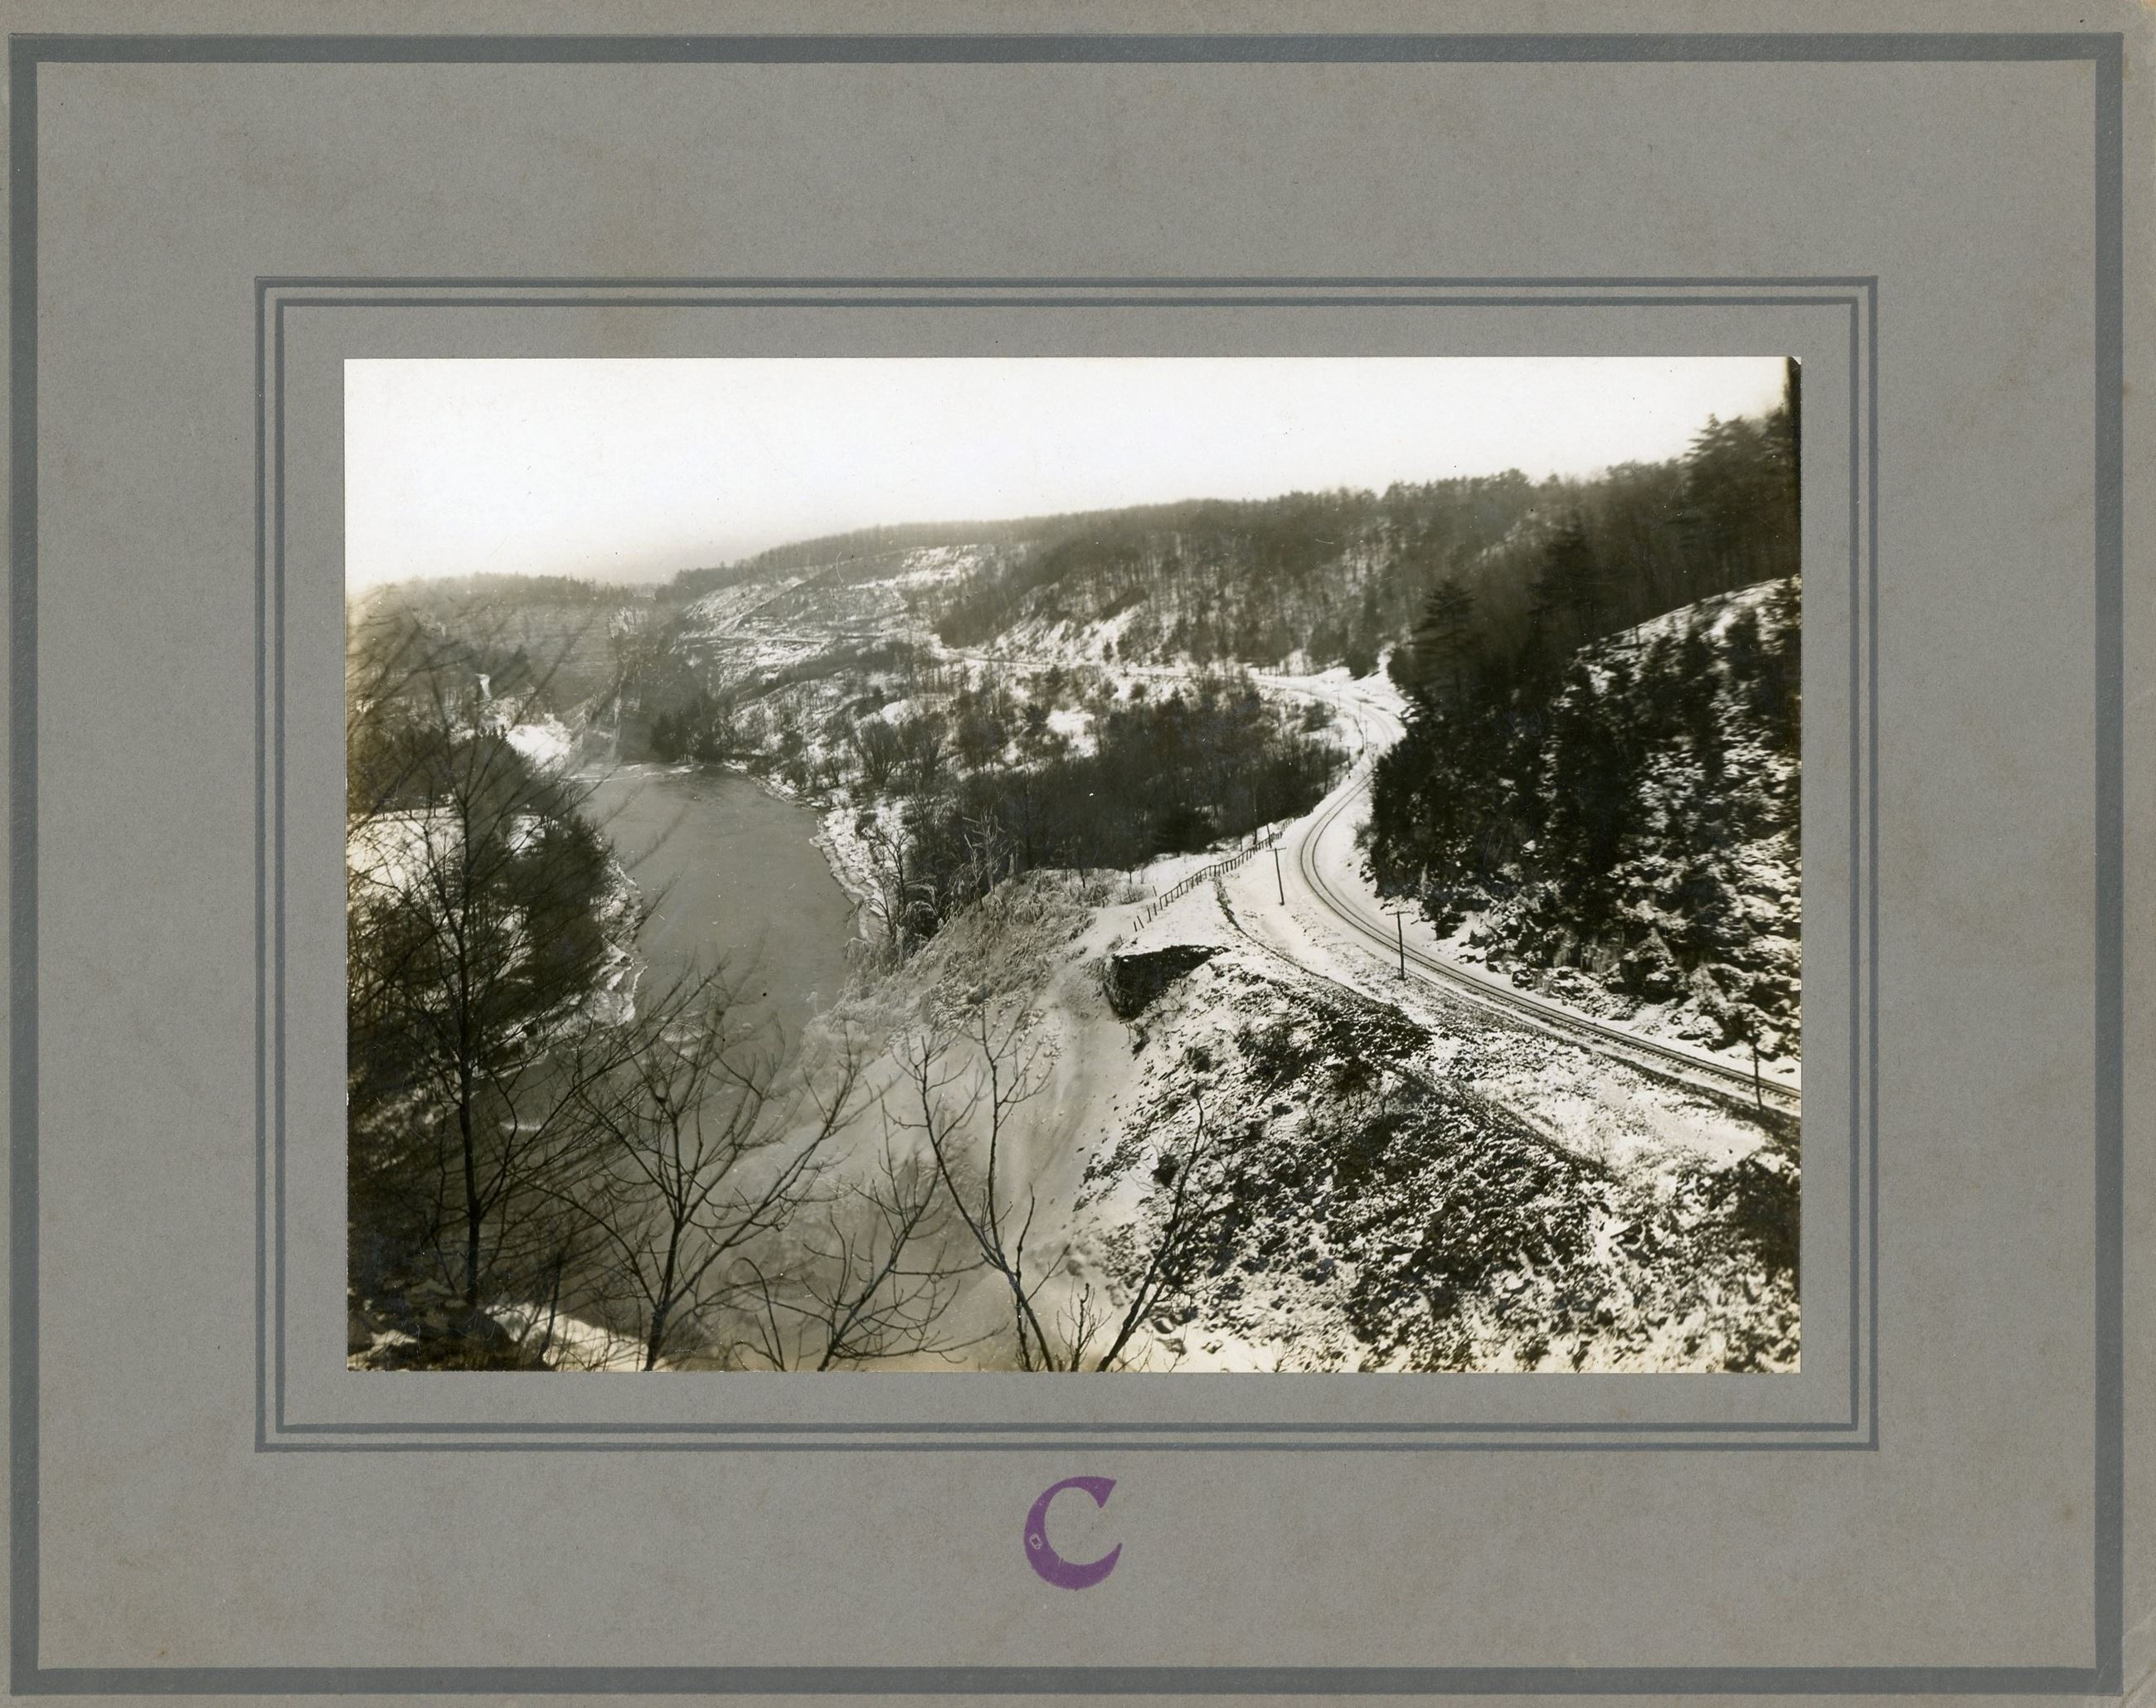 Image of railraod tracks winding along gorge in Letchworth state Park